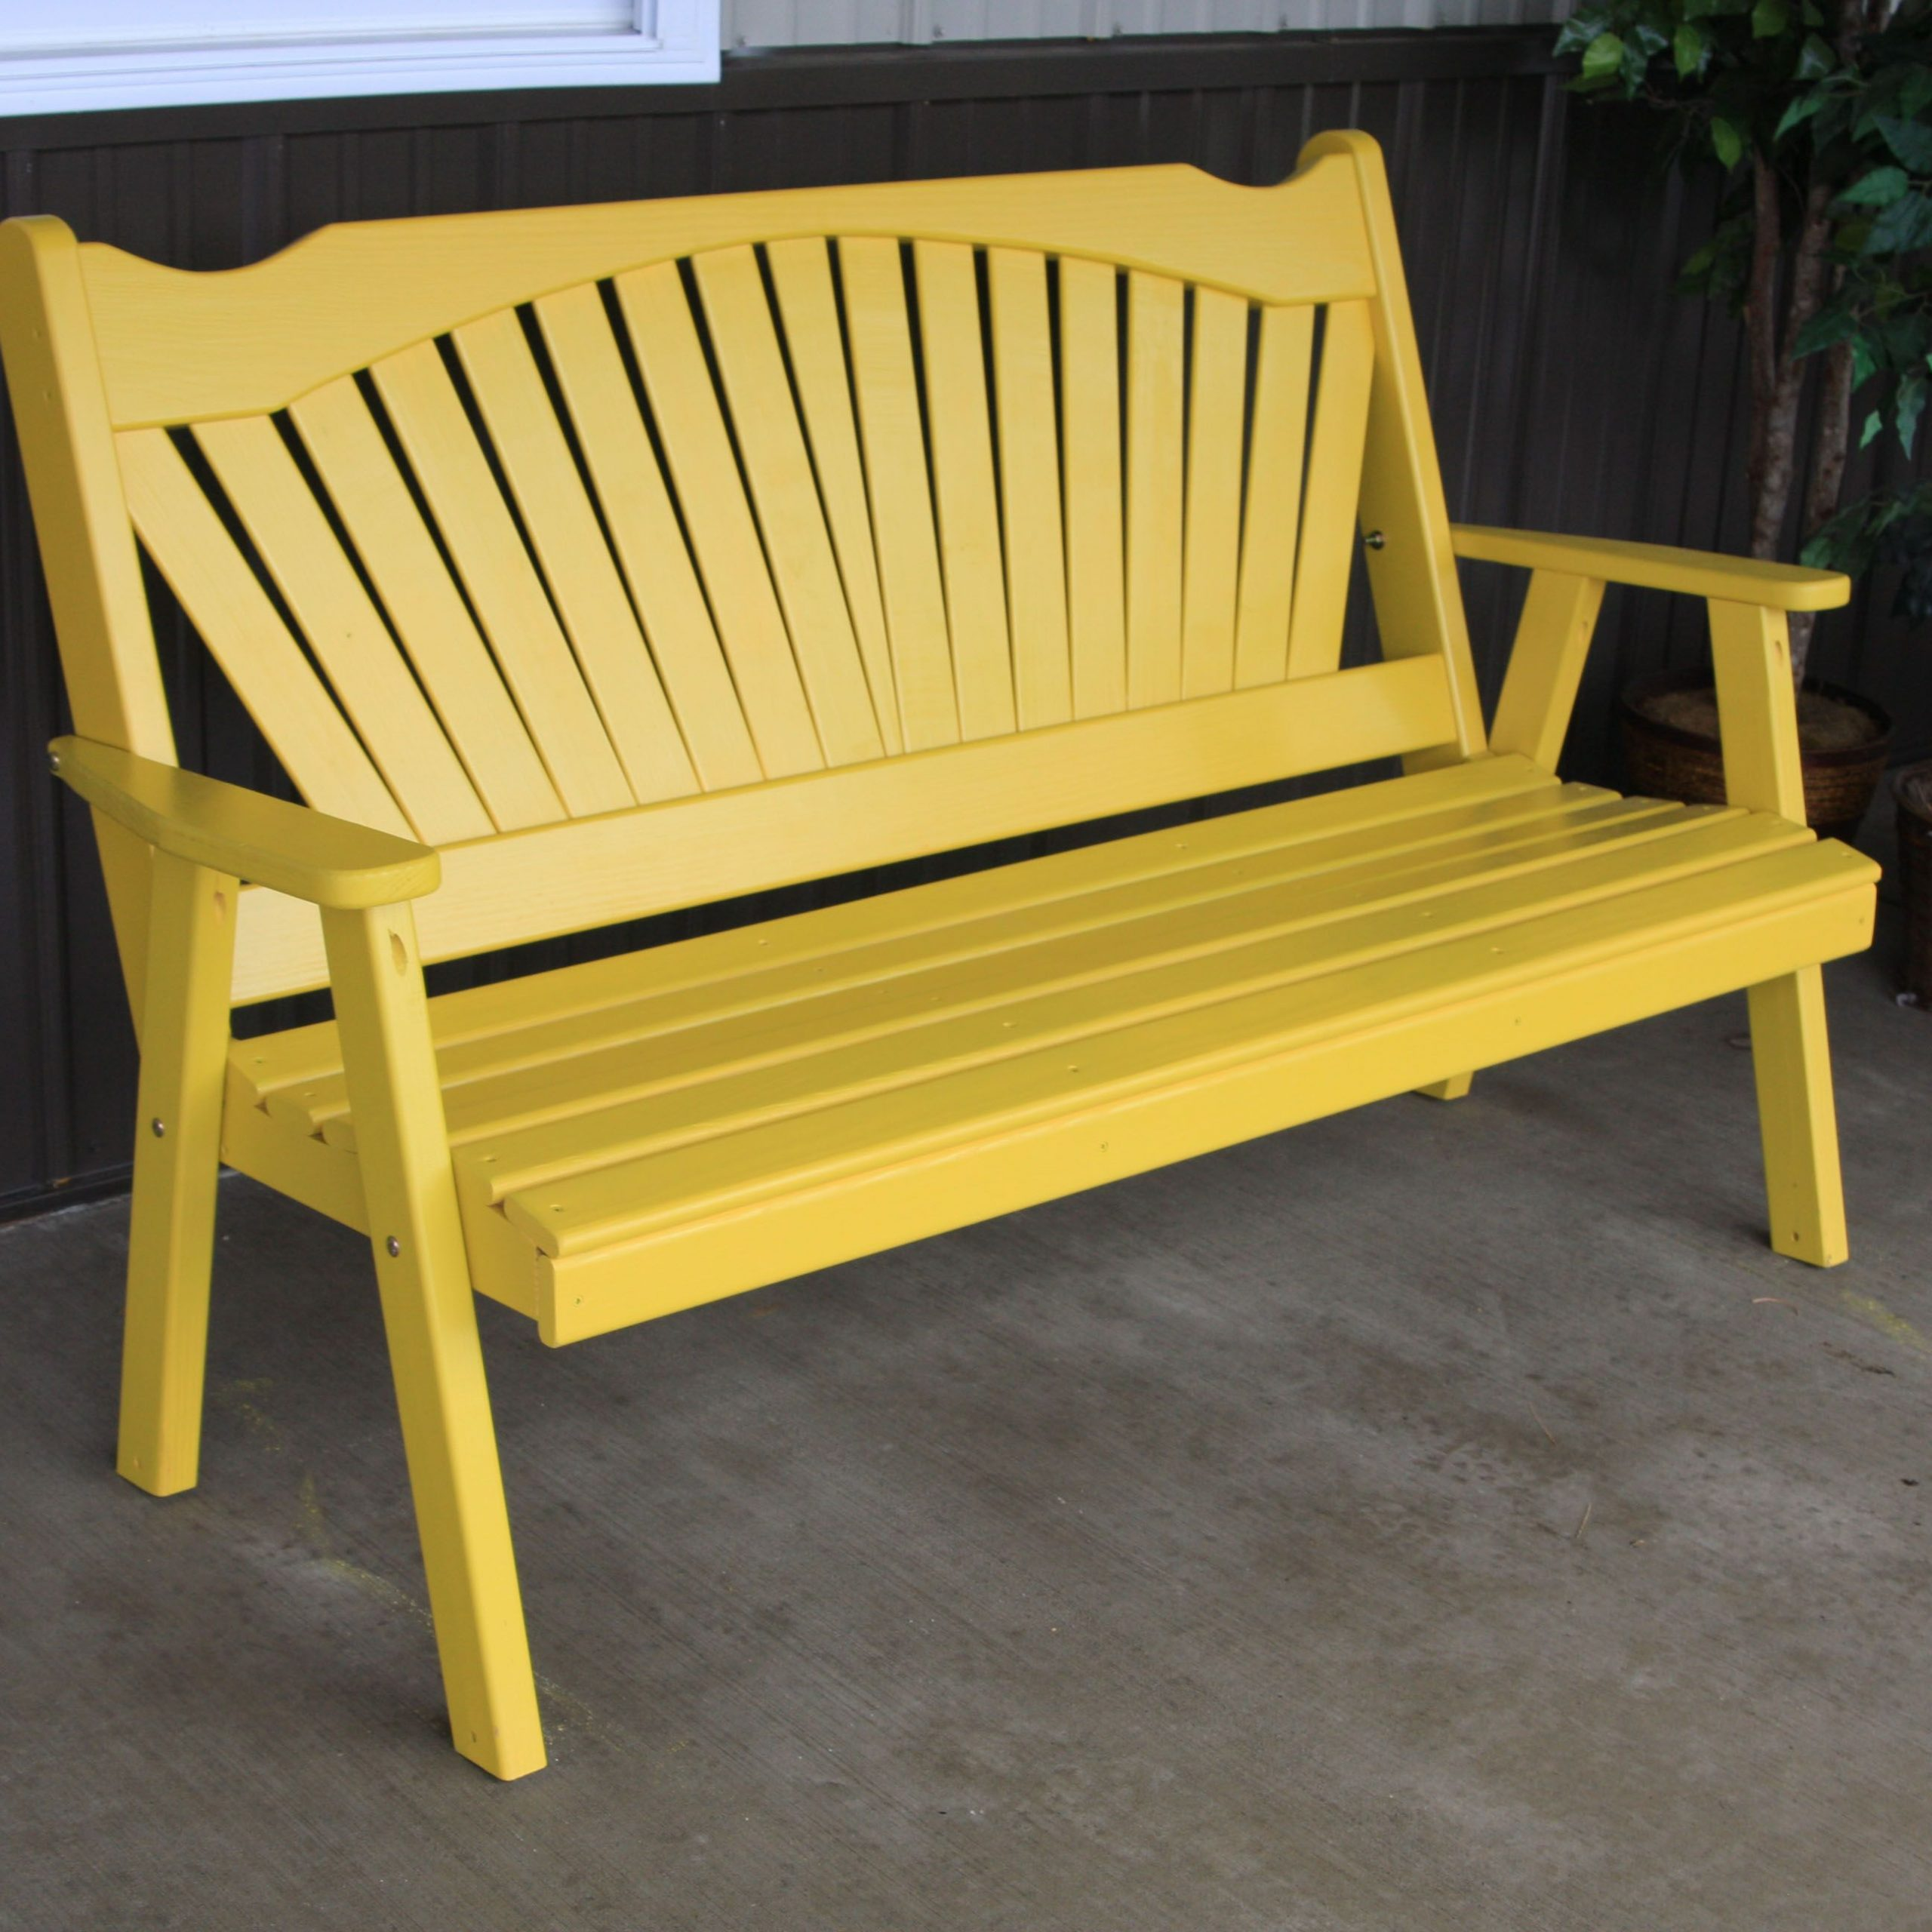 Pine 5' Fanback Bench A&L | Garden Bench, Outdoor Deck With Skoog Chevron Wooden Storage Benches (View 22 of 25)